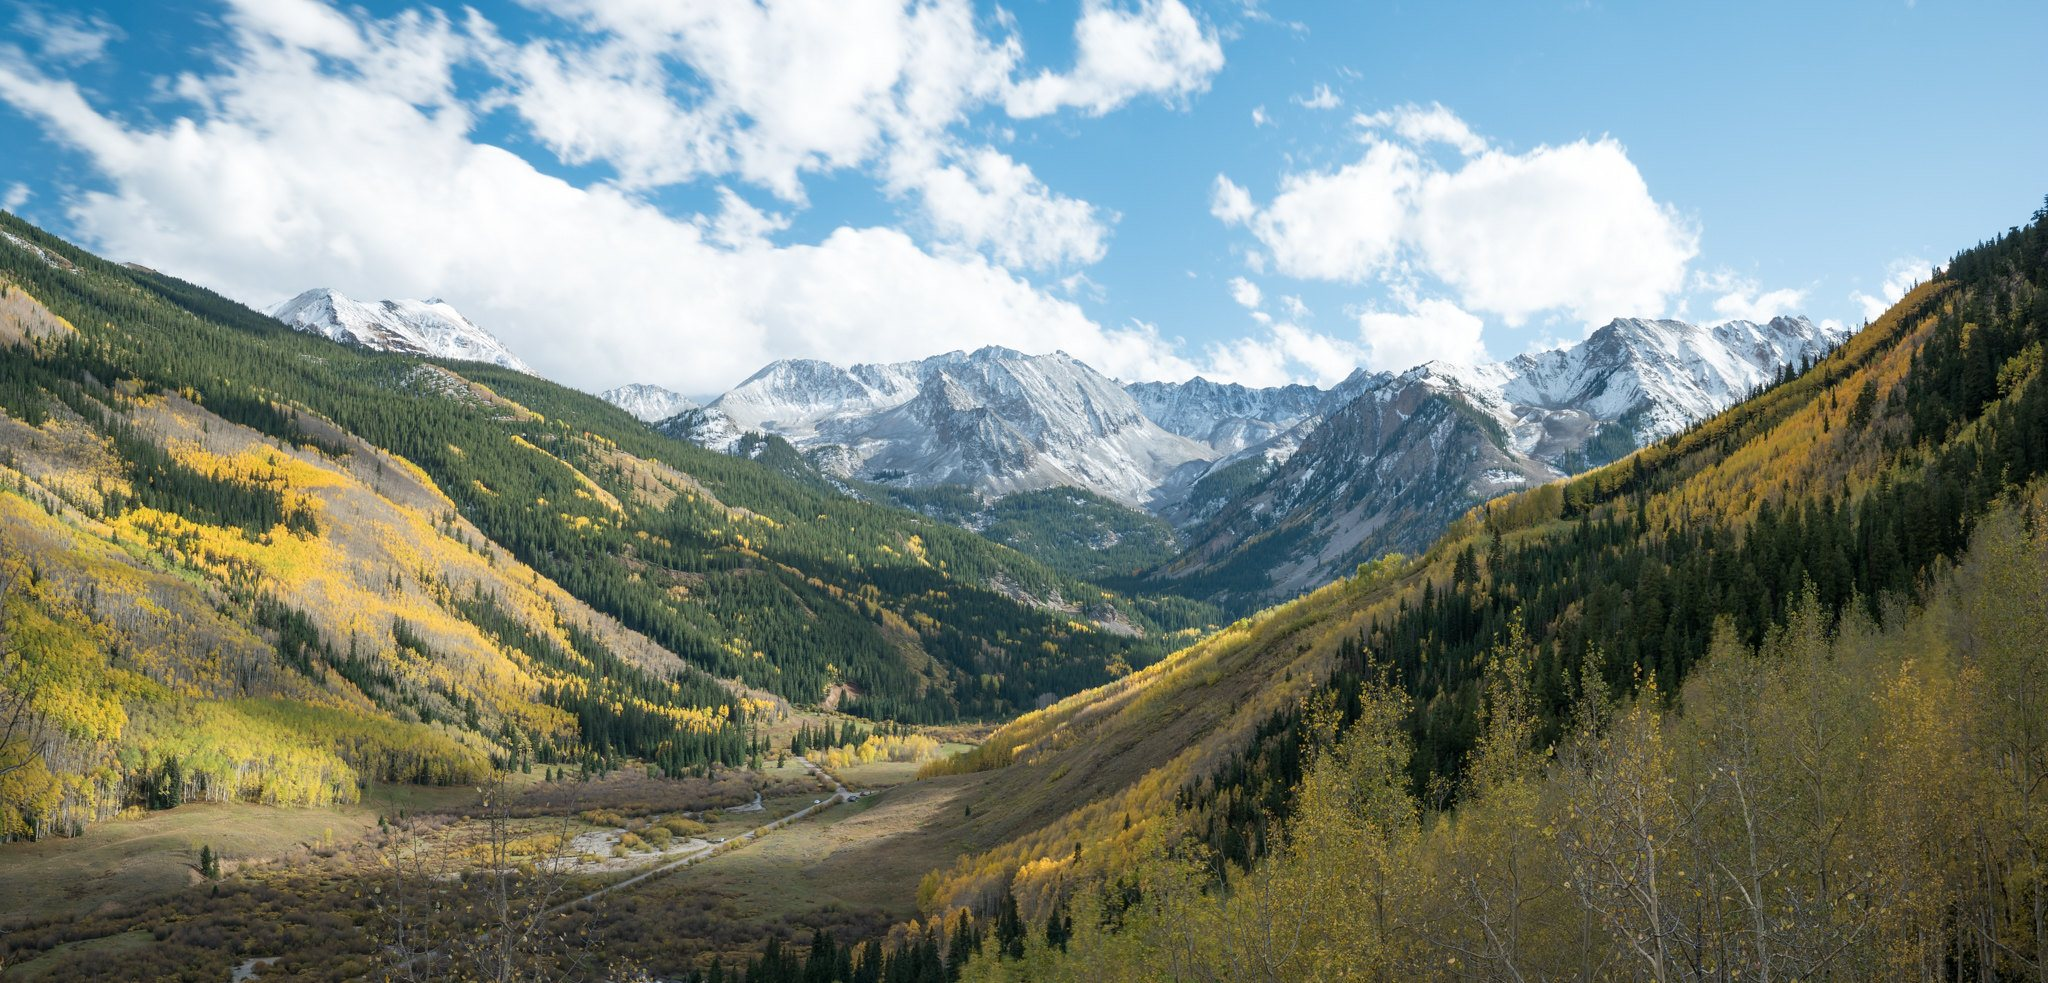 Things to do in Aspen